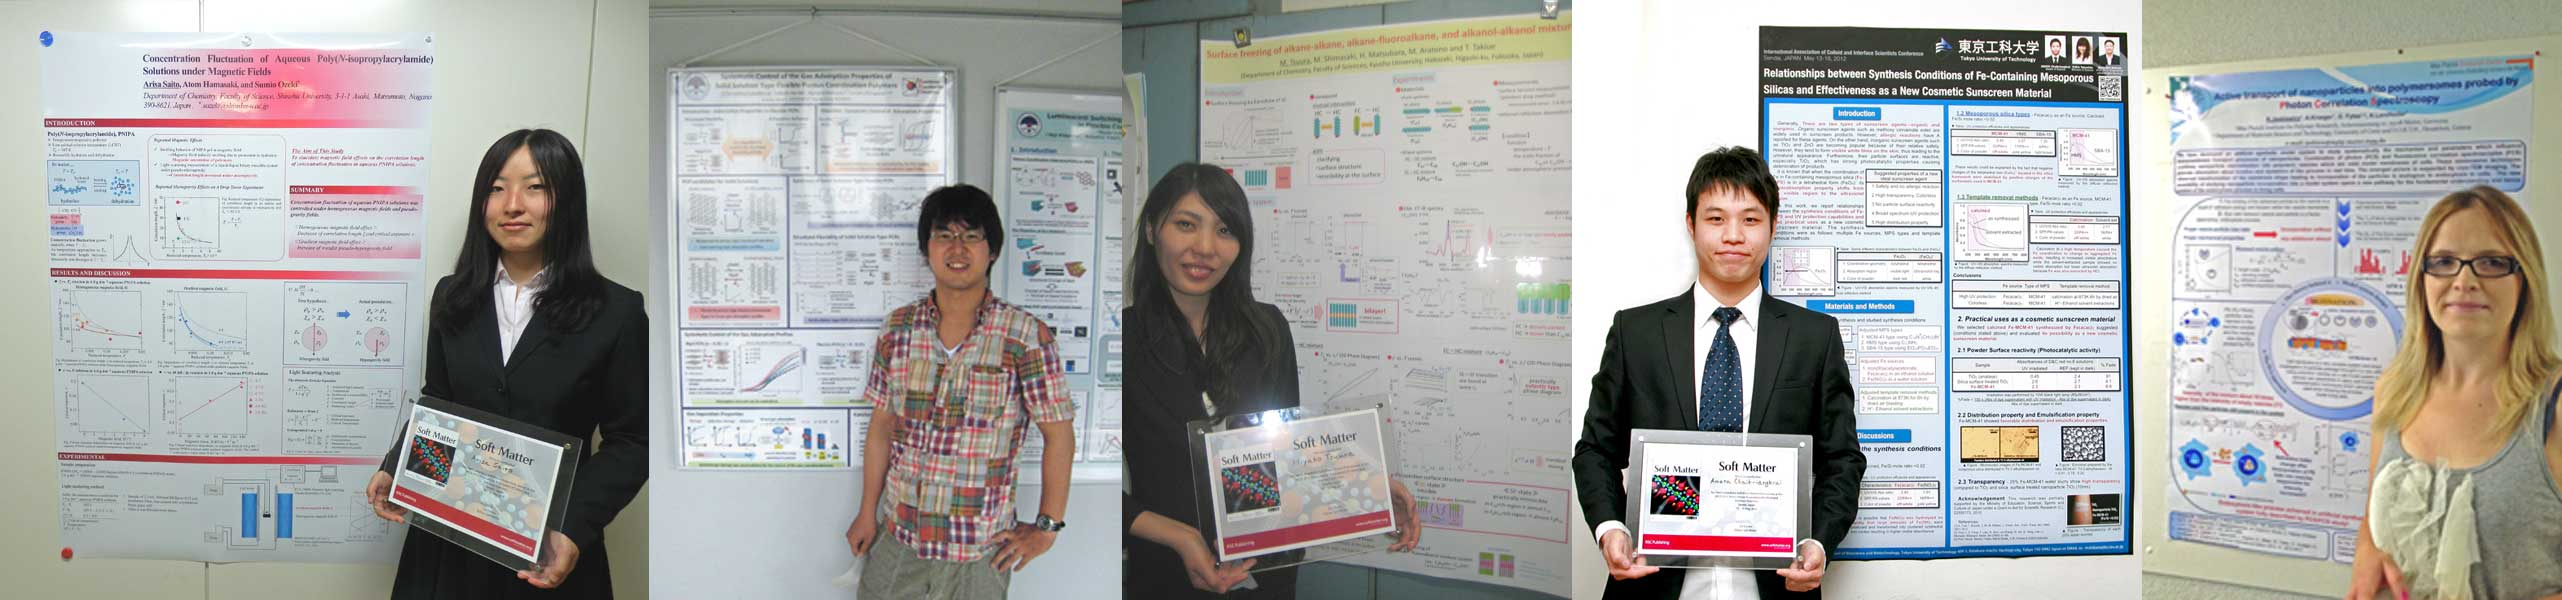 Poster Prize winners at International Association of Colloid and Interface Scientists